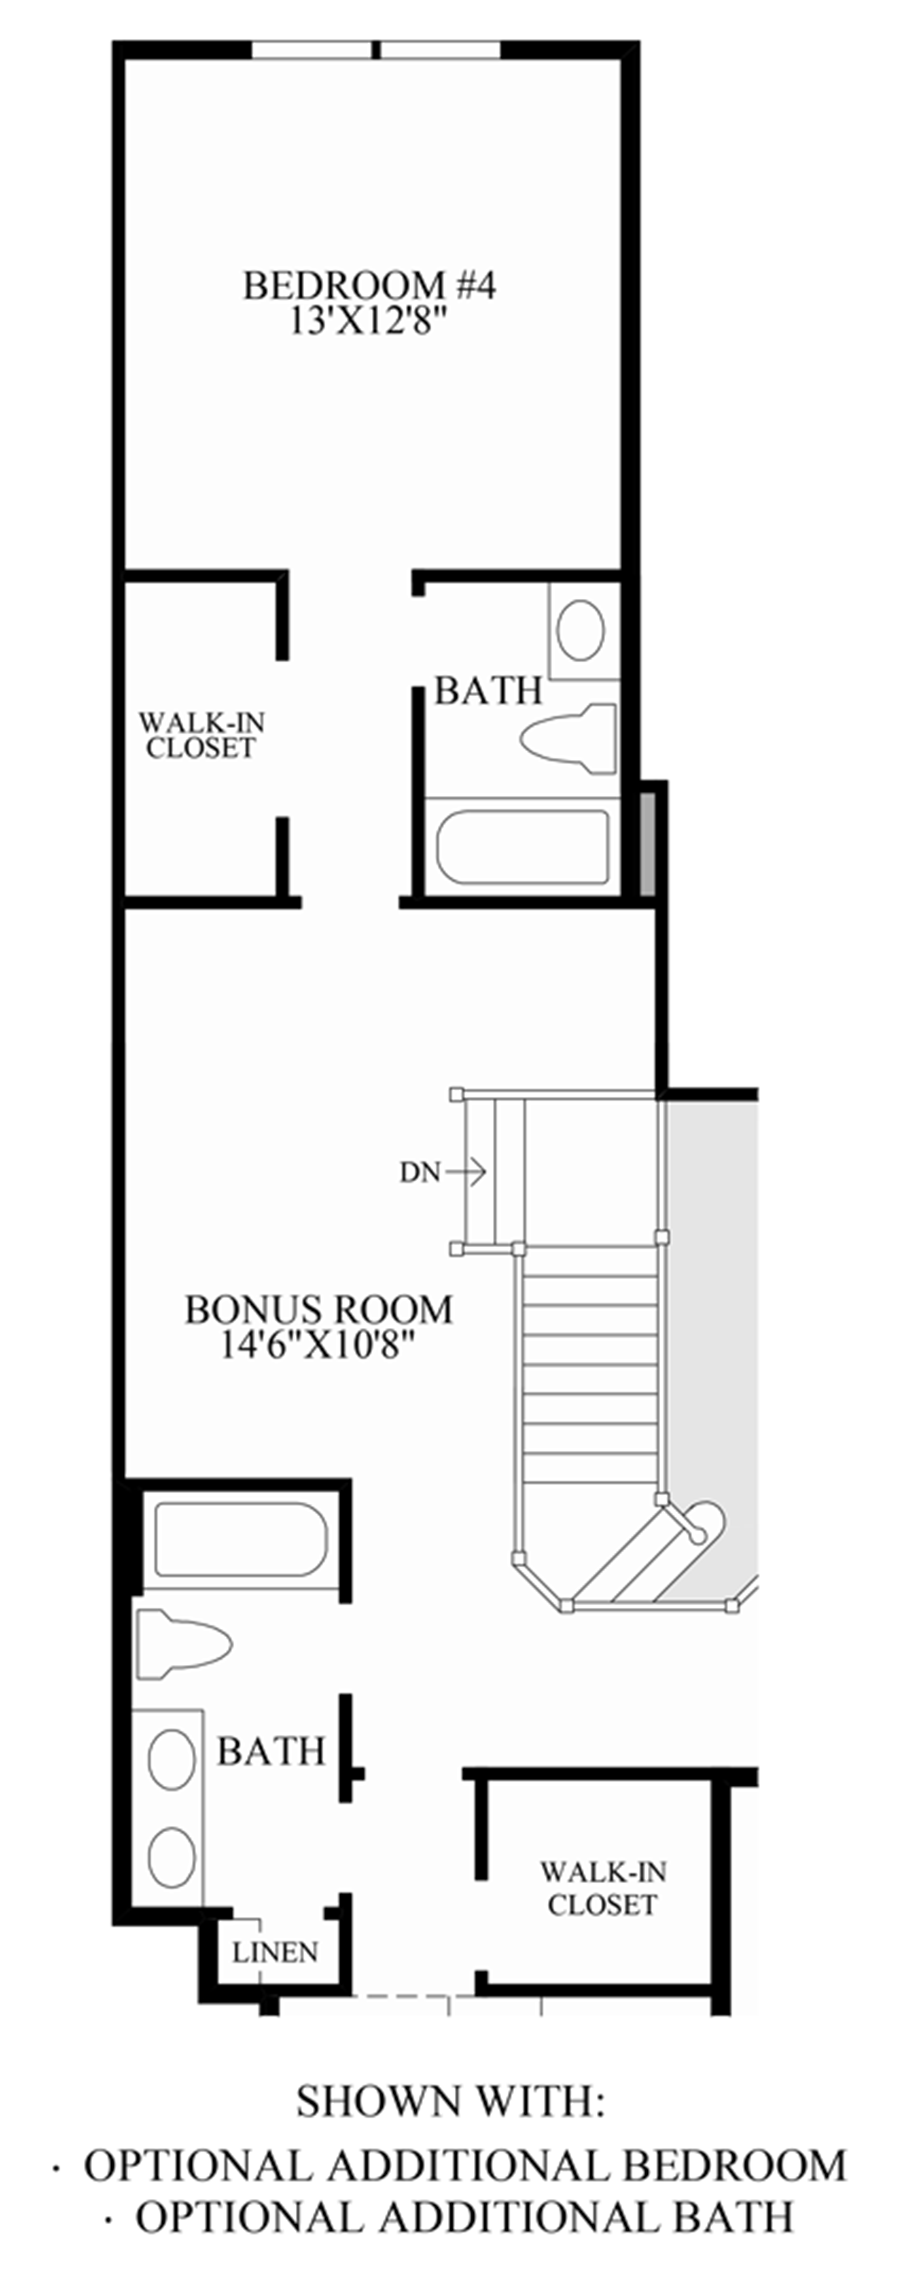 Optional Additional Bedroom/Bath Floor Plan